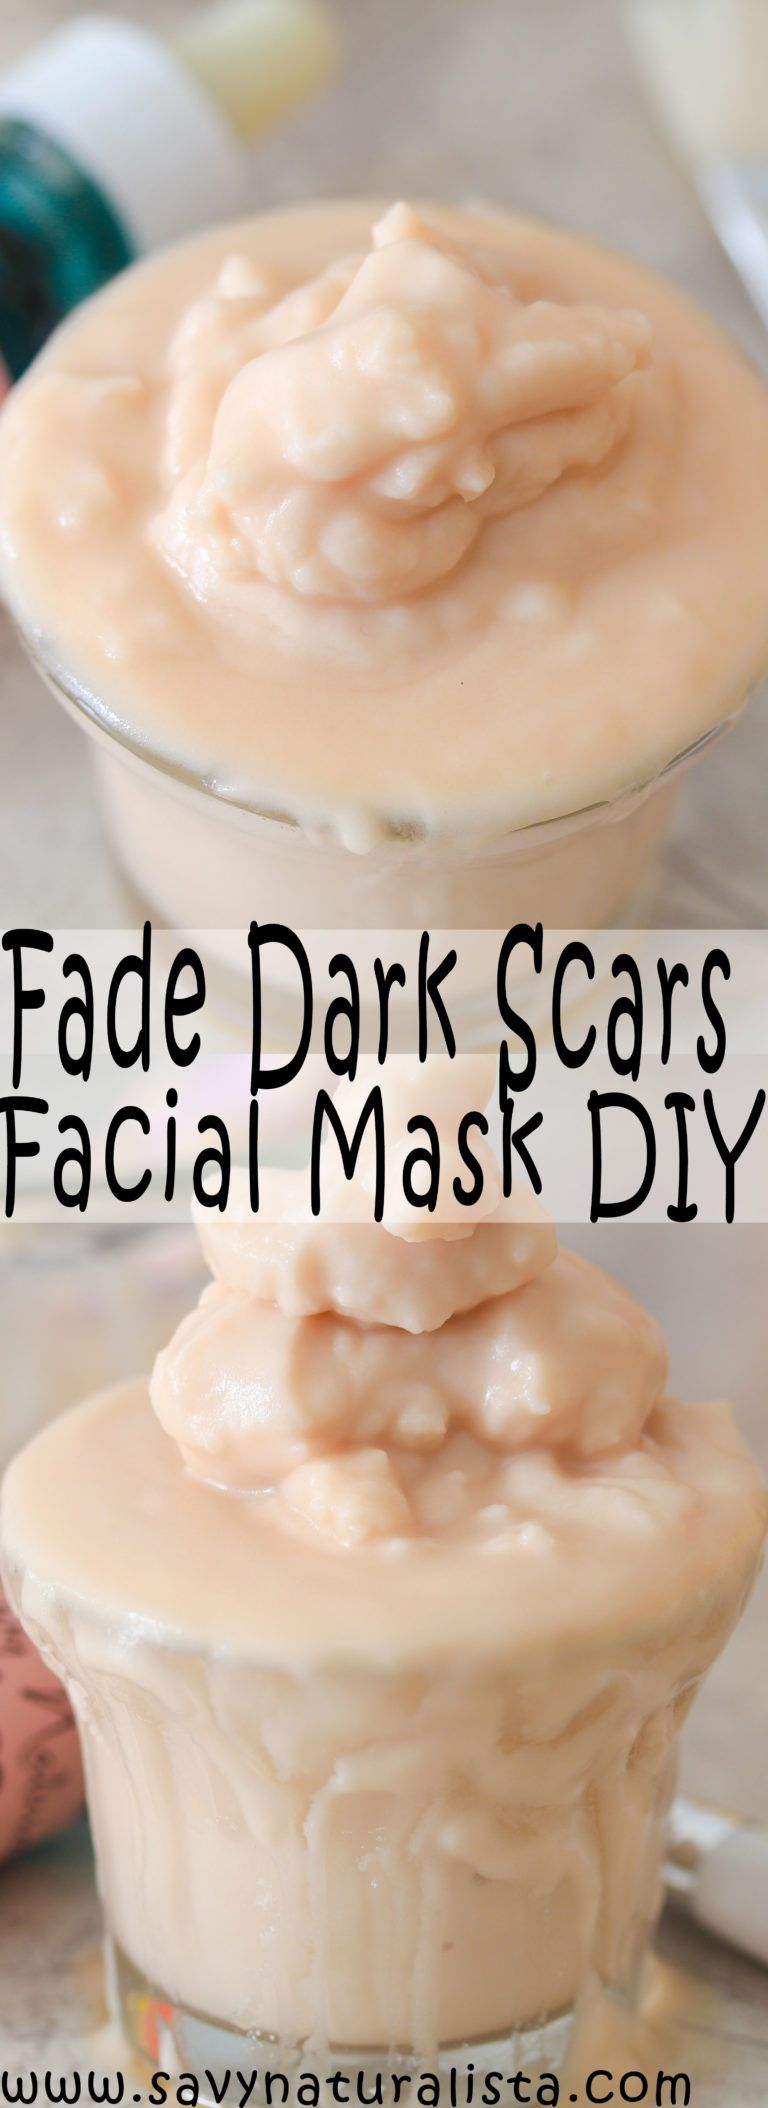 If you have dark scars try this easy all-natural mixture of baking soda and apple cider vinegar to make your skin glow and fade away dark scars.